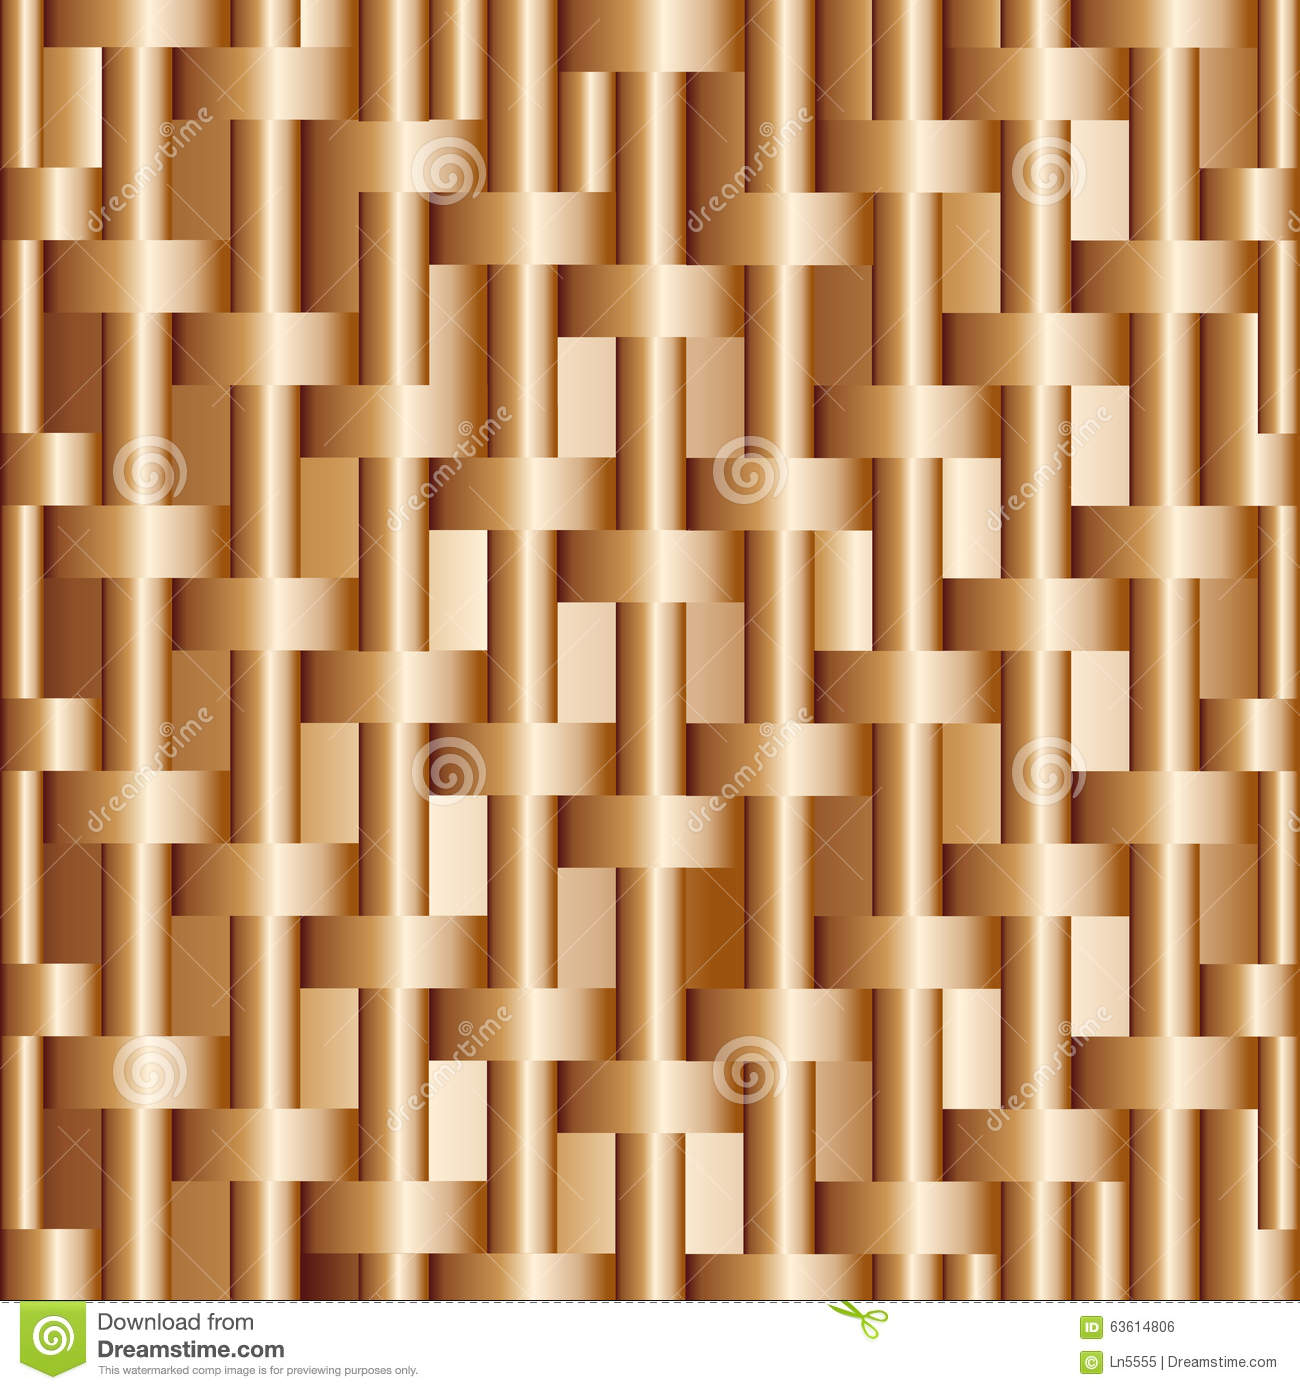 Abstract background with bronze bars vector for design workflow.